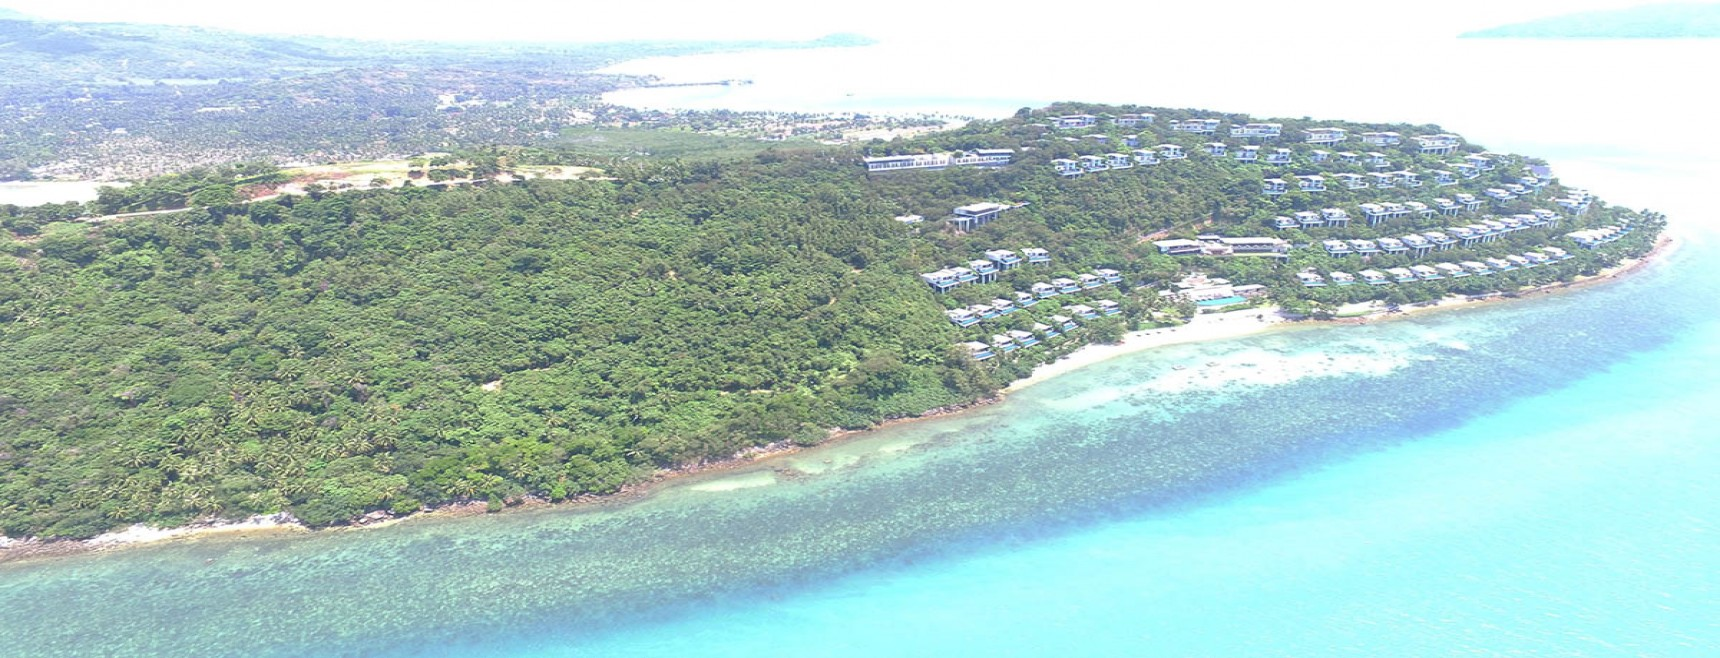 Land, Land Sales, Listing ID 1416, Taling Ngam, South West, Koh Samui,